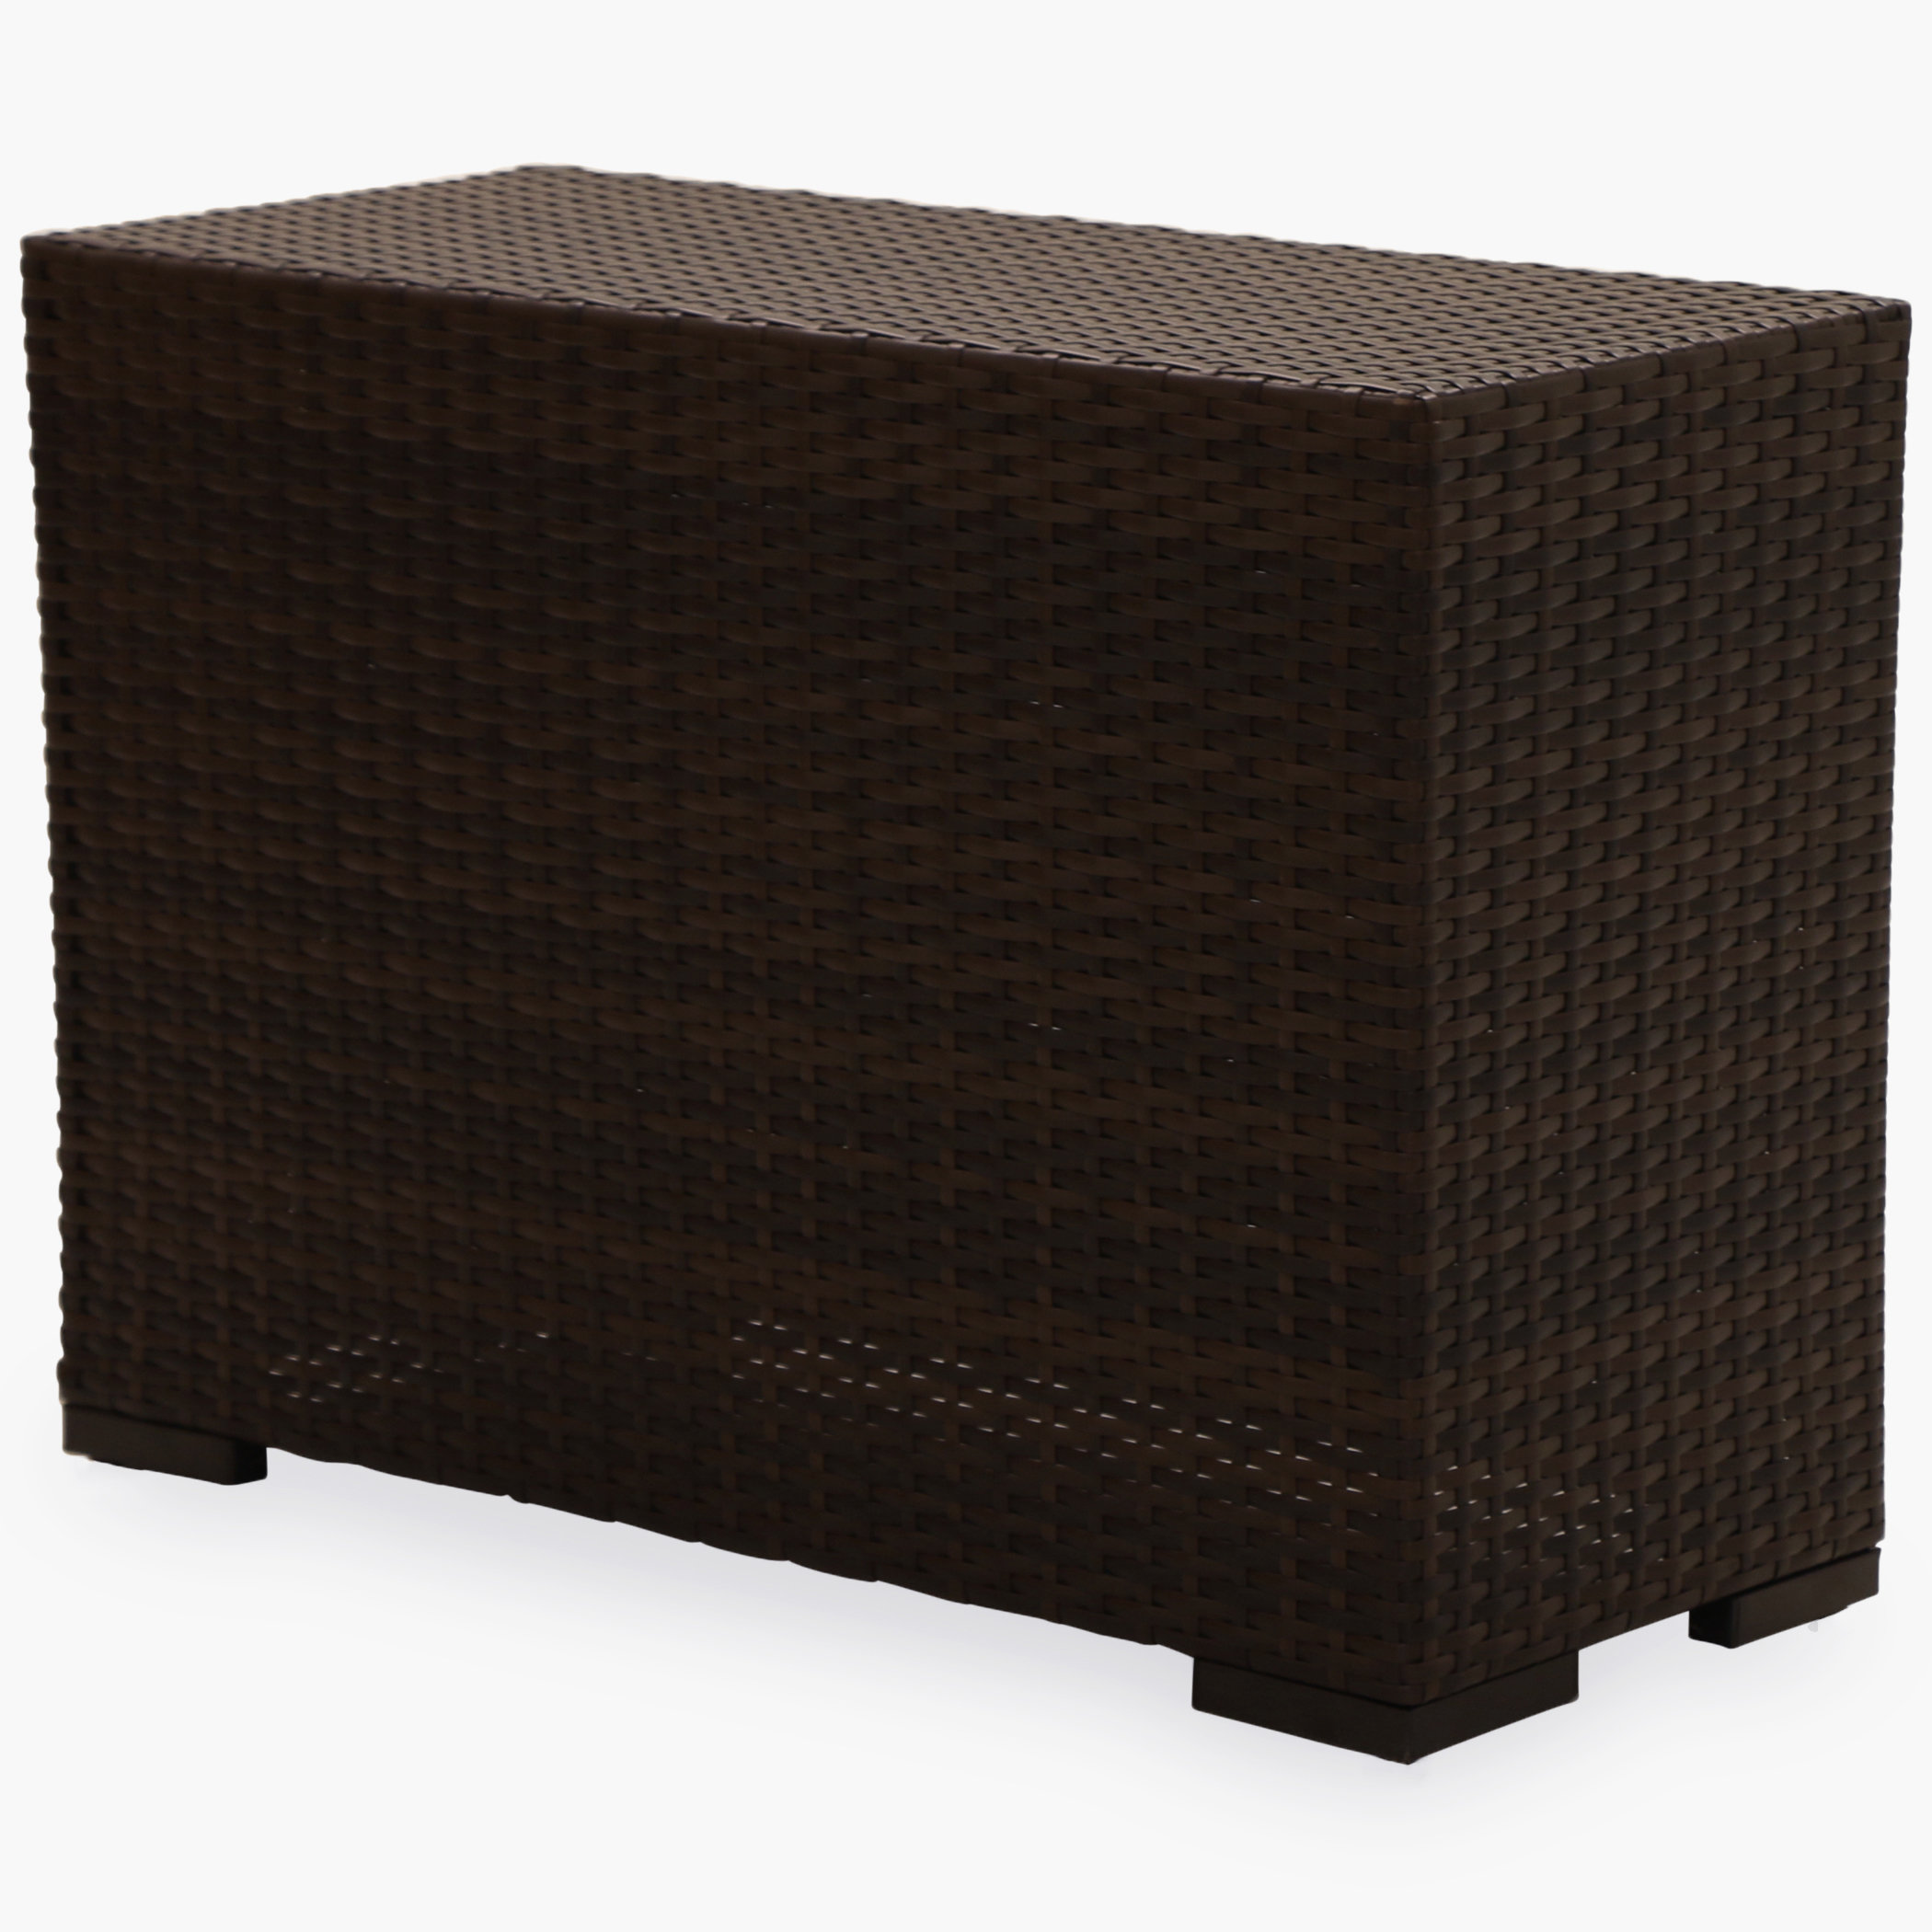 shoreline rattan southport wicker side table outdoor brown painted accent tables room essentials desk copper lamp ballard designs chair cushions modern with drawer nautical